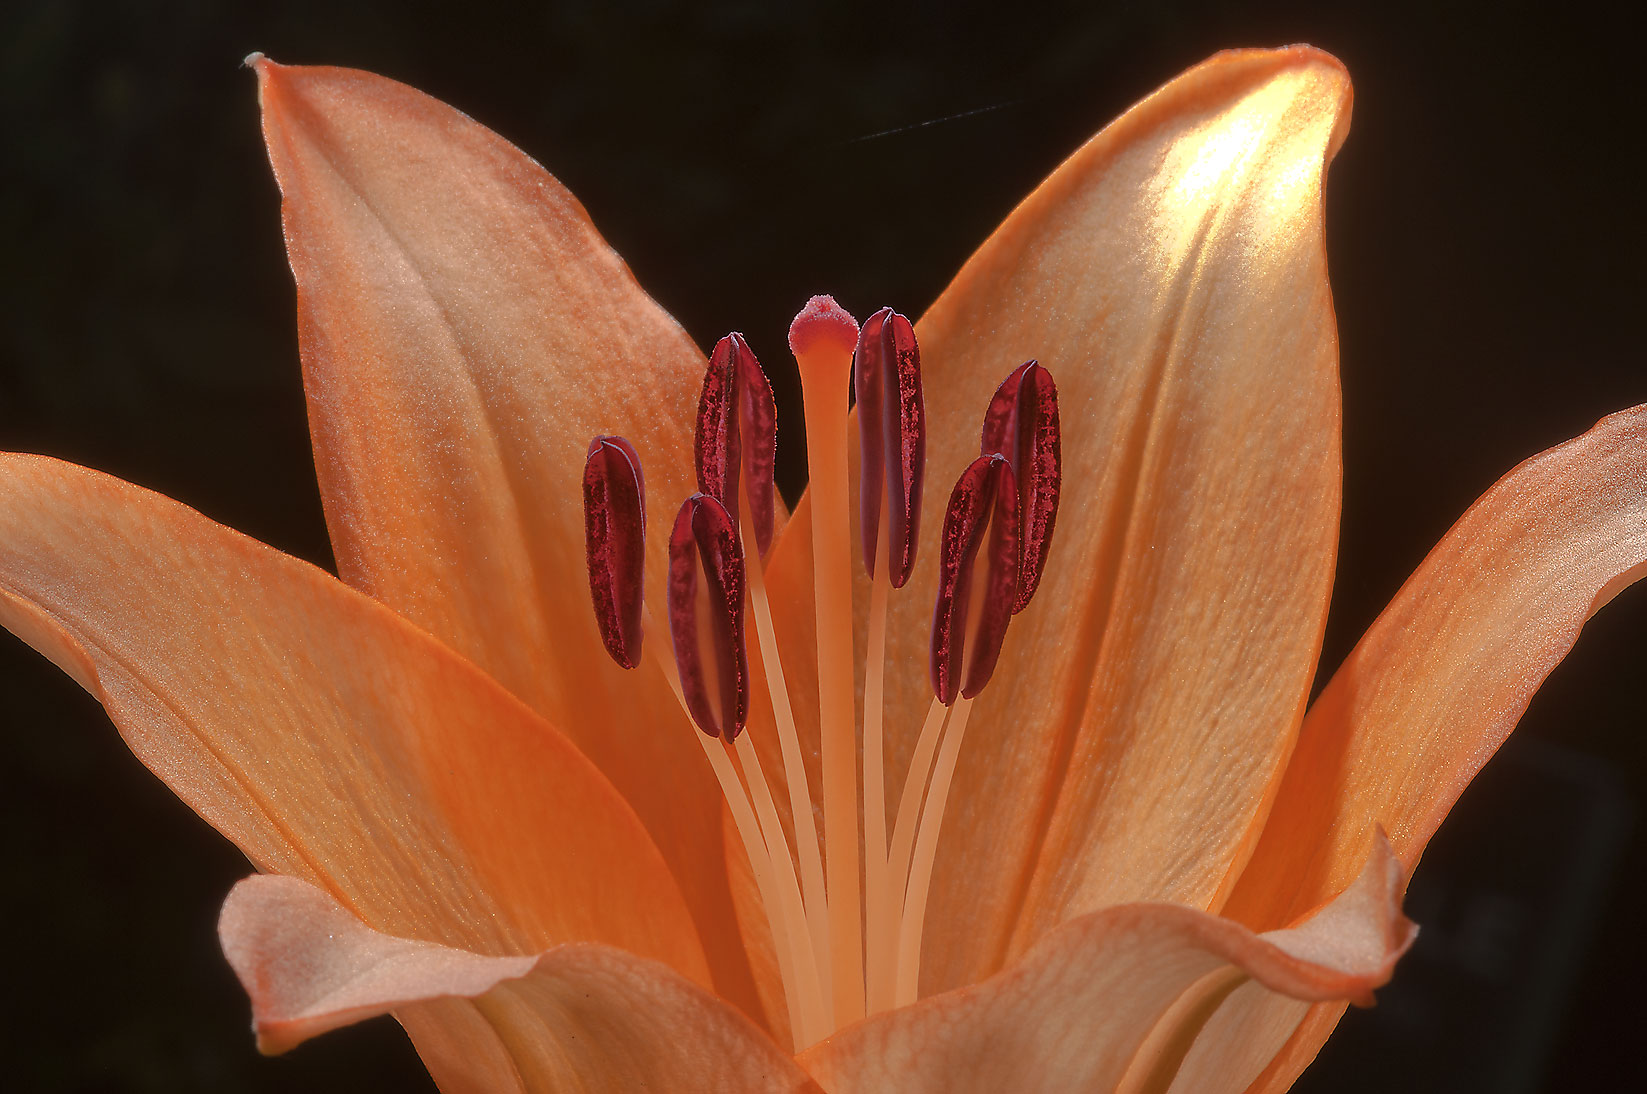 Orange lily in Mercer Arboretum and Botanical Gardens. Humble (Houston area), Texas